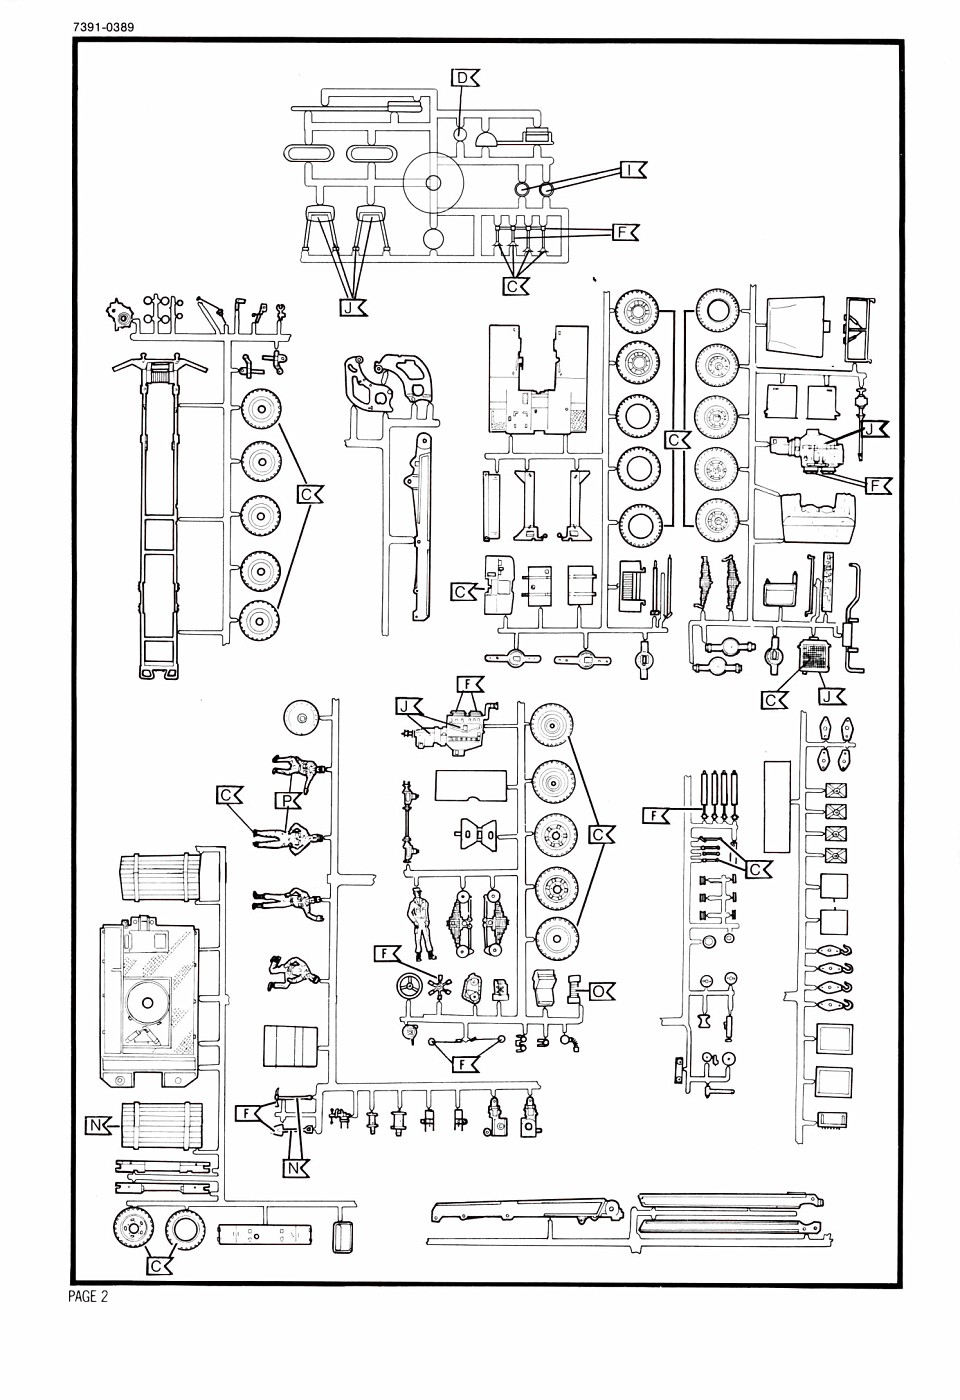 Peterbilt 387 Wiring Diagram For Pinterest Freightliner